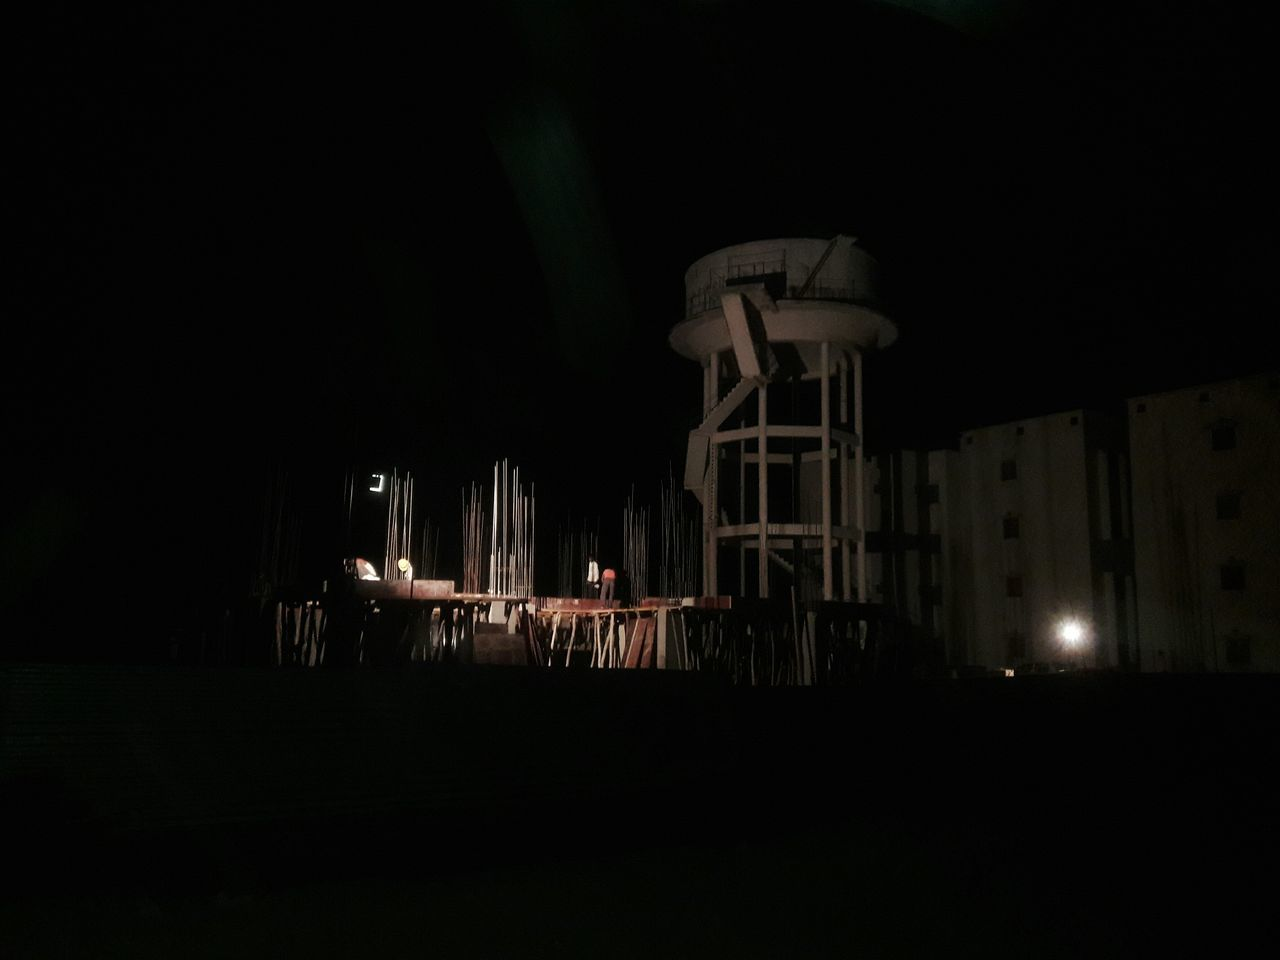 Night Architecture Built Structure Sky Illuminated Outdoors Astronomy Construction No People